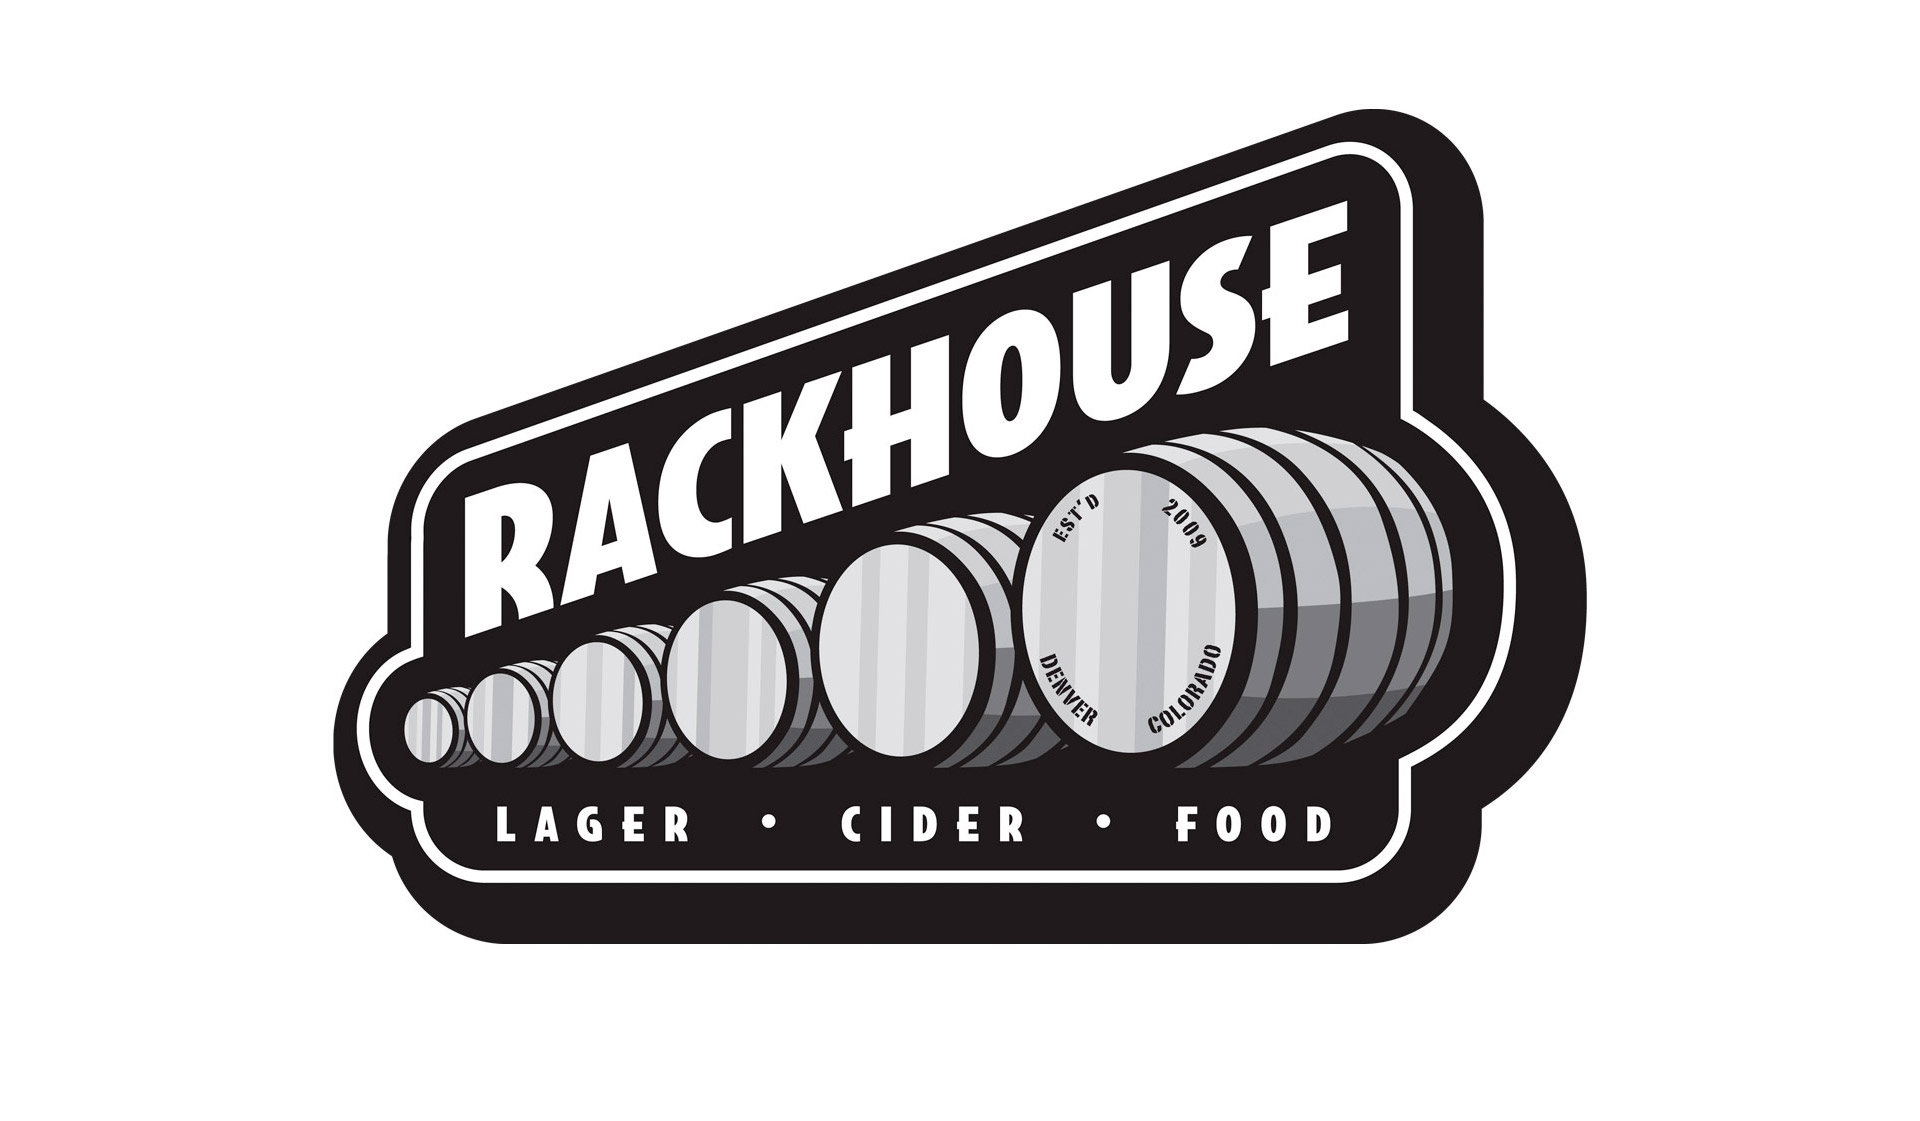 The Rackhouse Branding